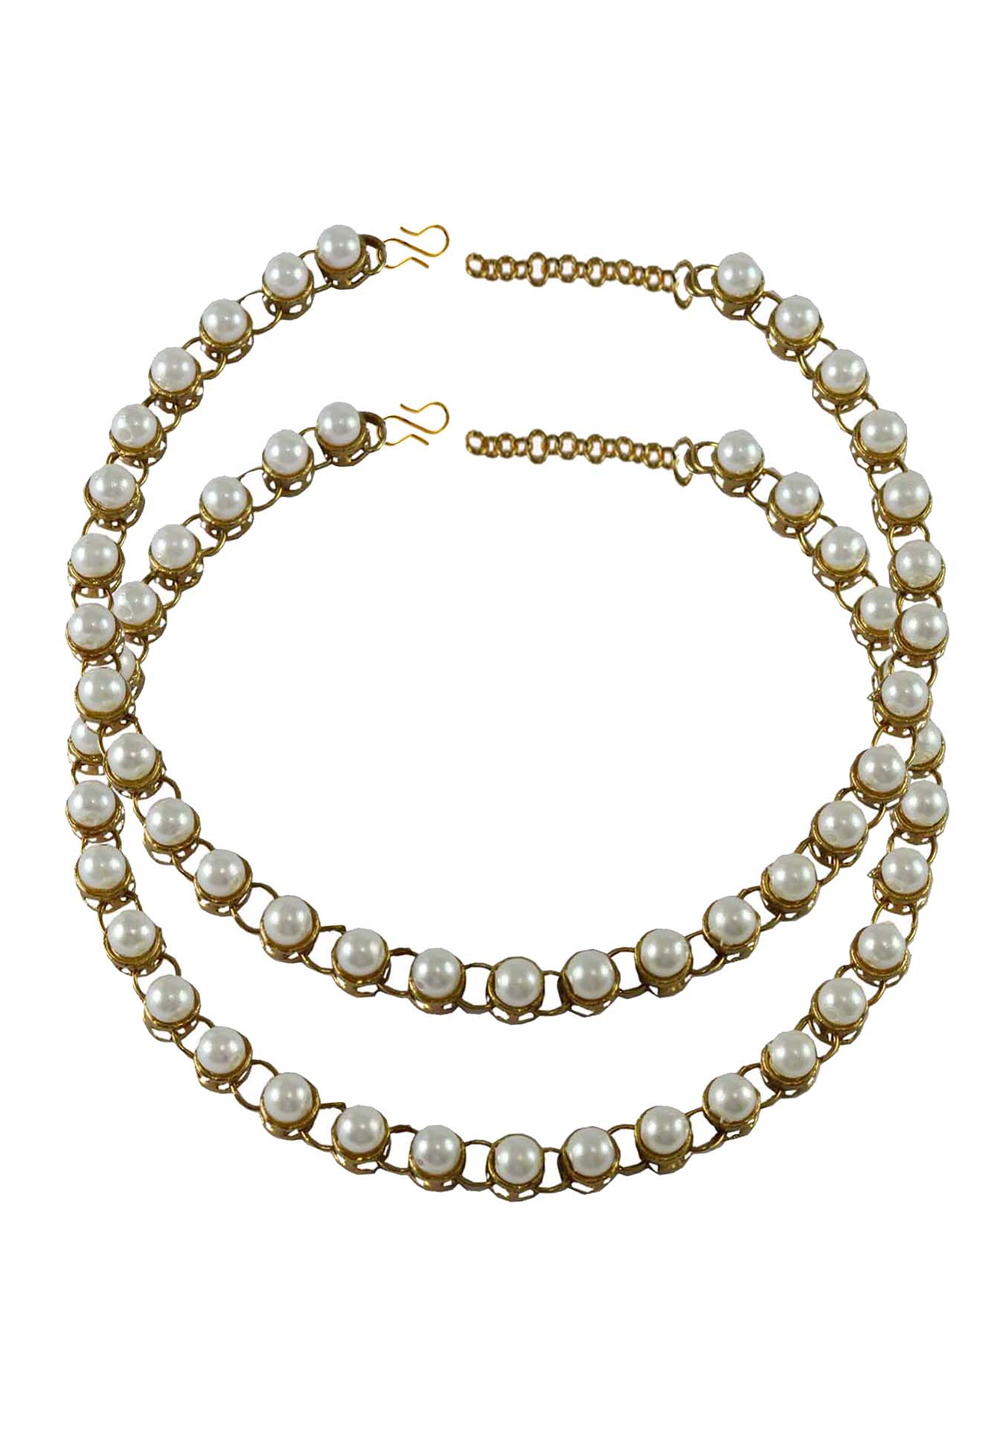 White Brass Gold Plated Anklets 171257